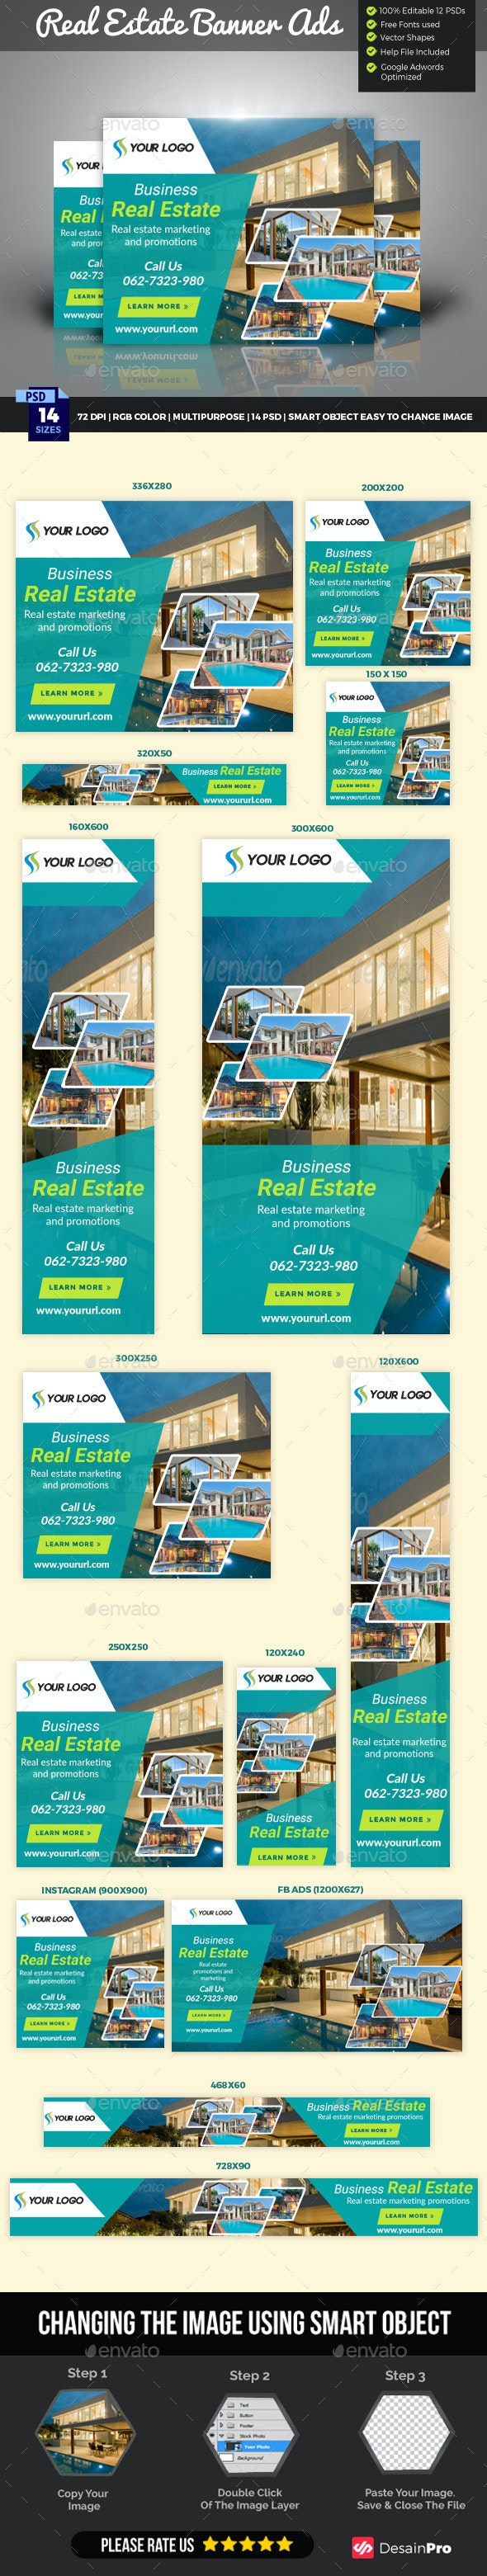 Real Estate Banner and Social Media  - Banners & Ads Web Elements